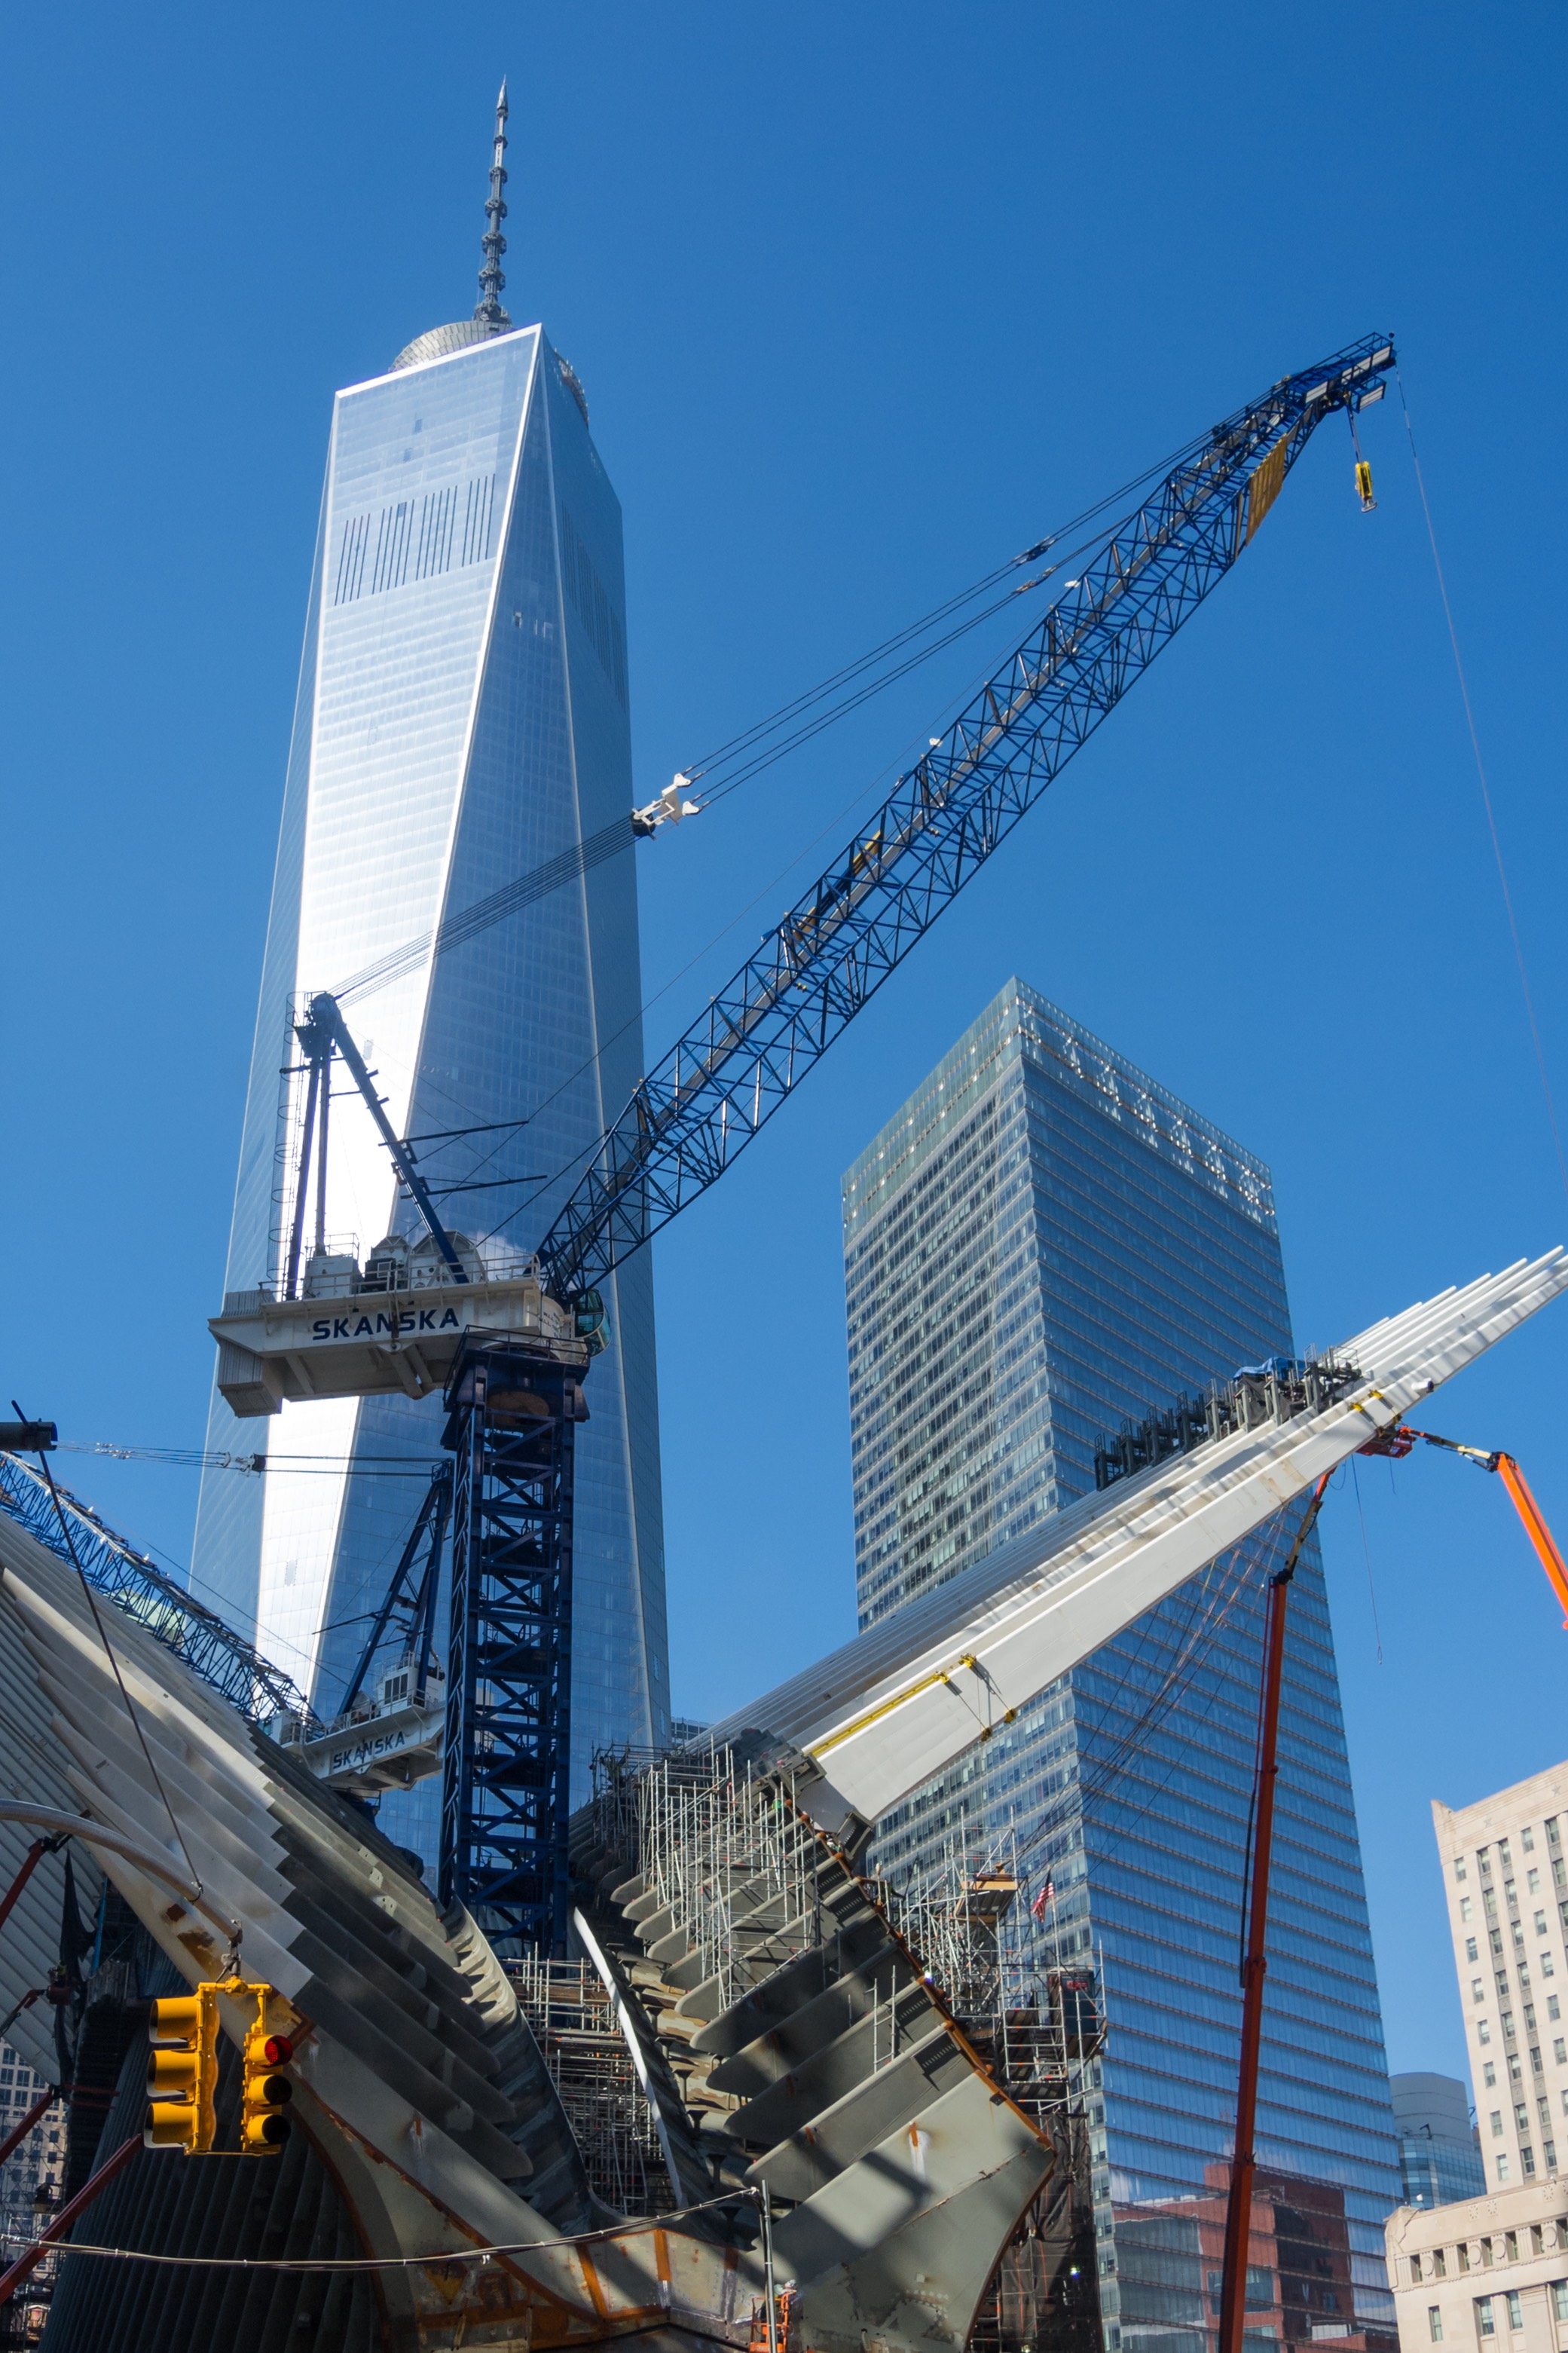 Construction-sight-crane-Westfield-World-Trade-Center-Manhattan-New-York-682703052_2081x3122-squashed.jpeg